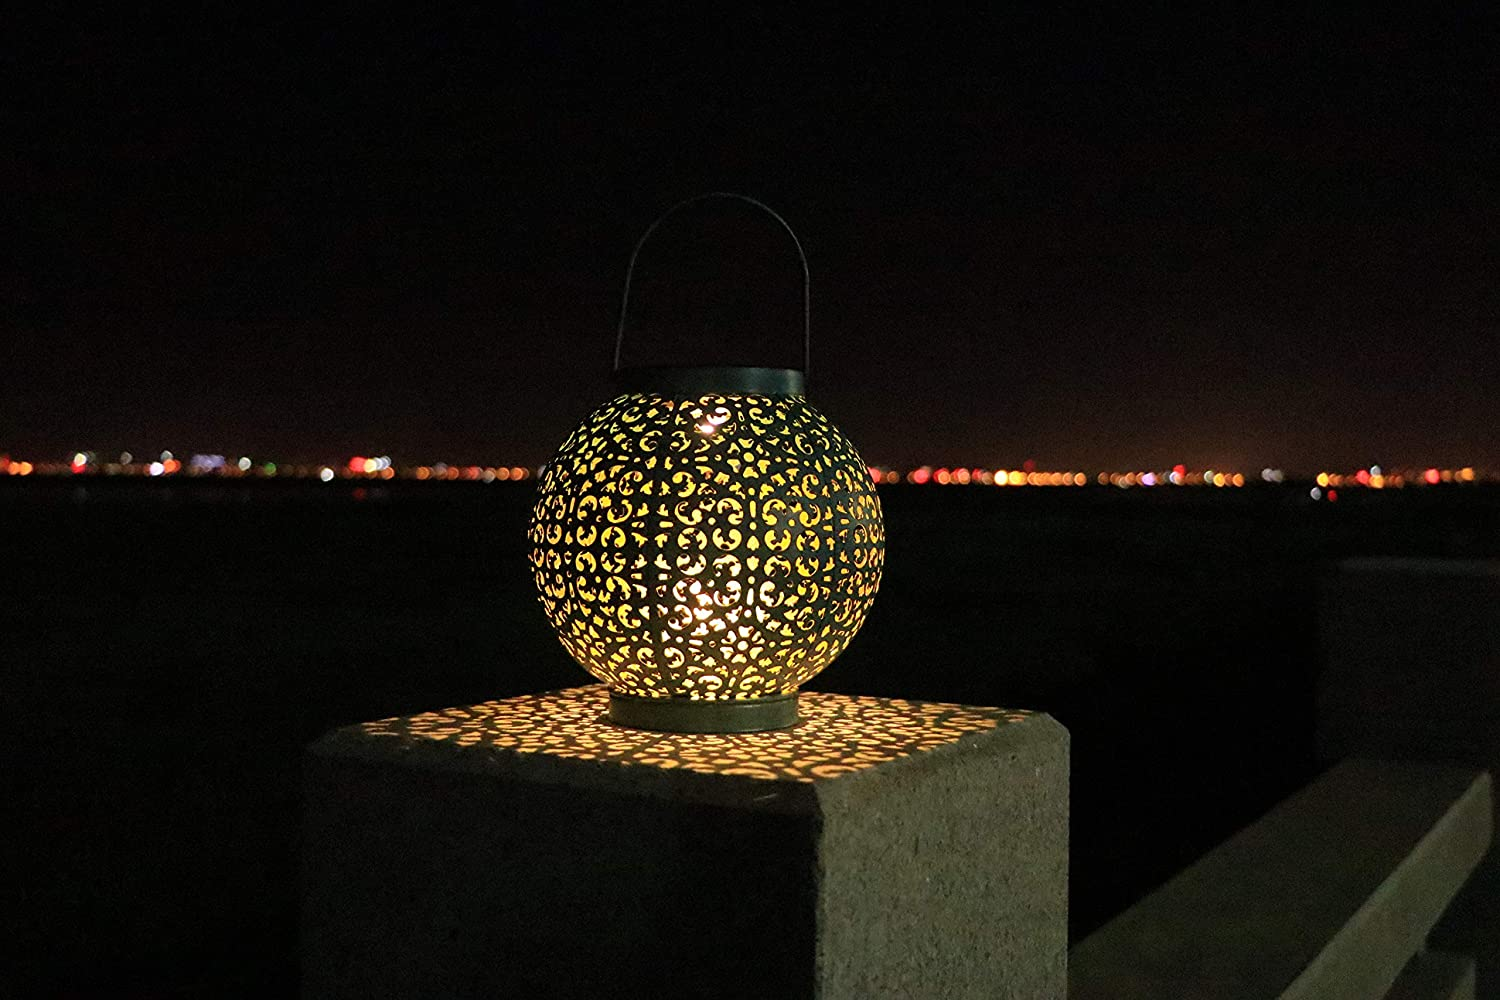 Free Amazon Promo Code 2020 for Solar Table Lights Outdoor Solar Powered Metal Ball